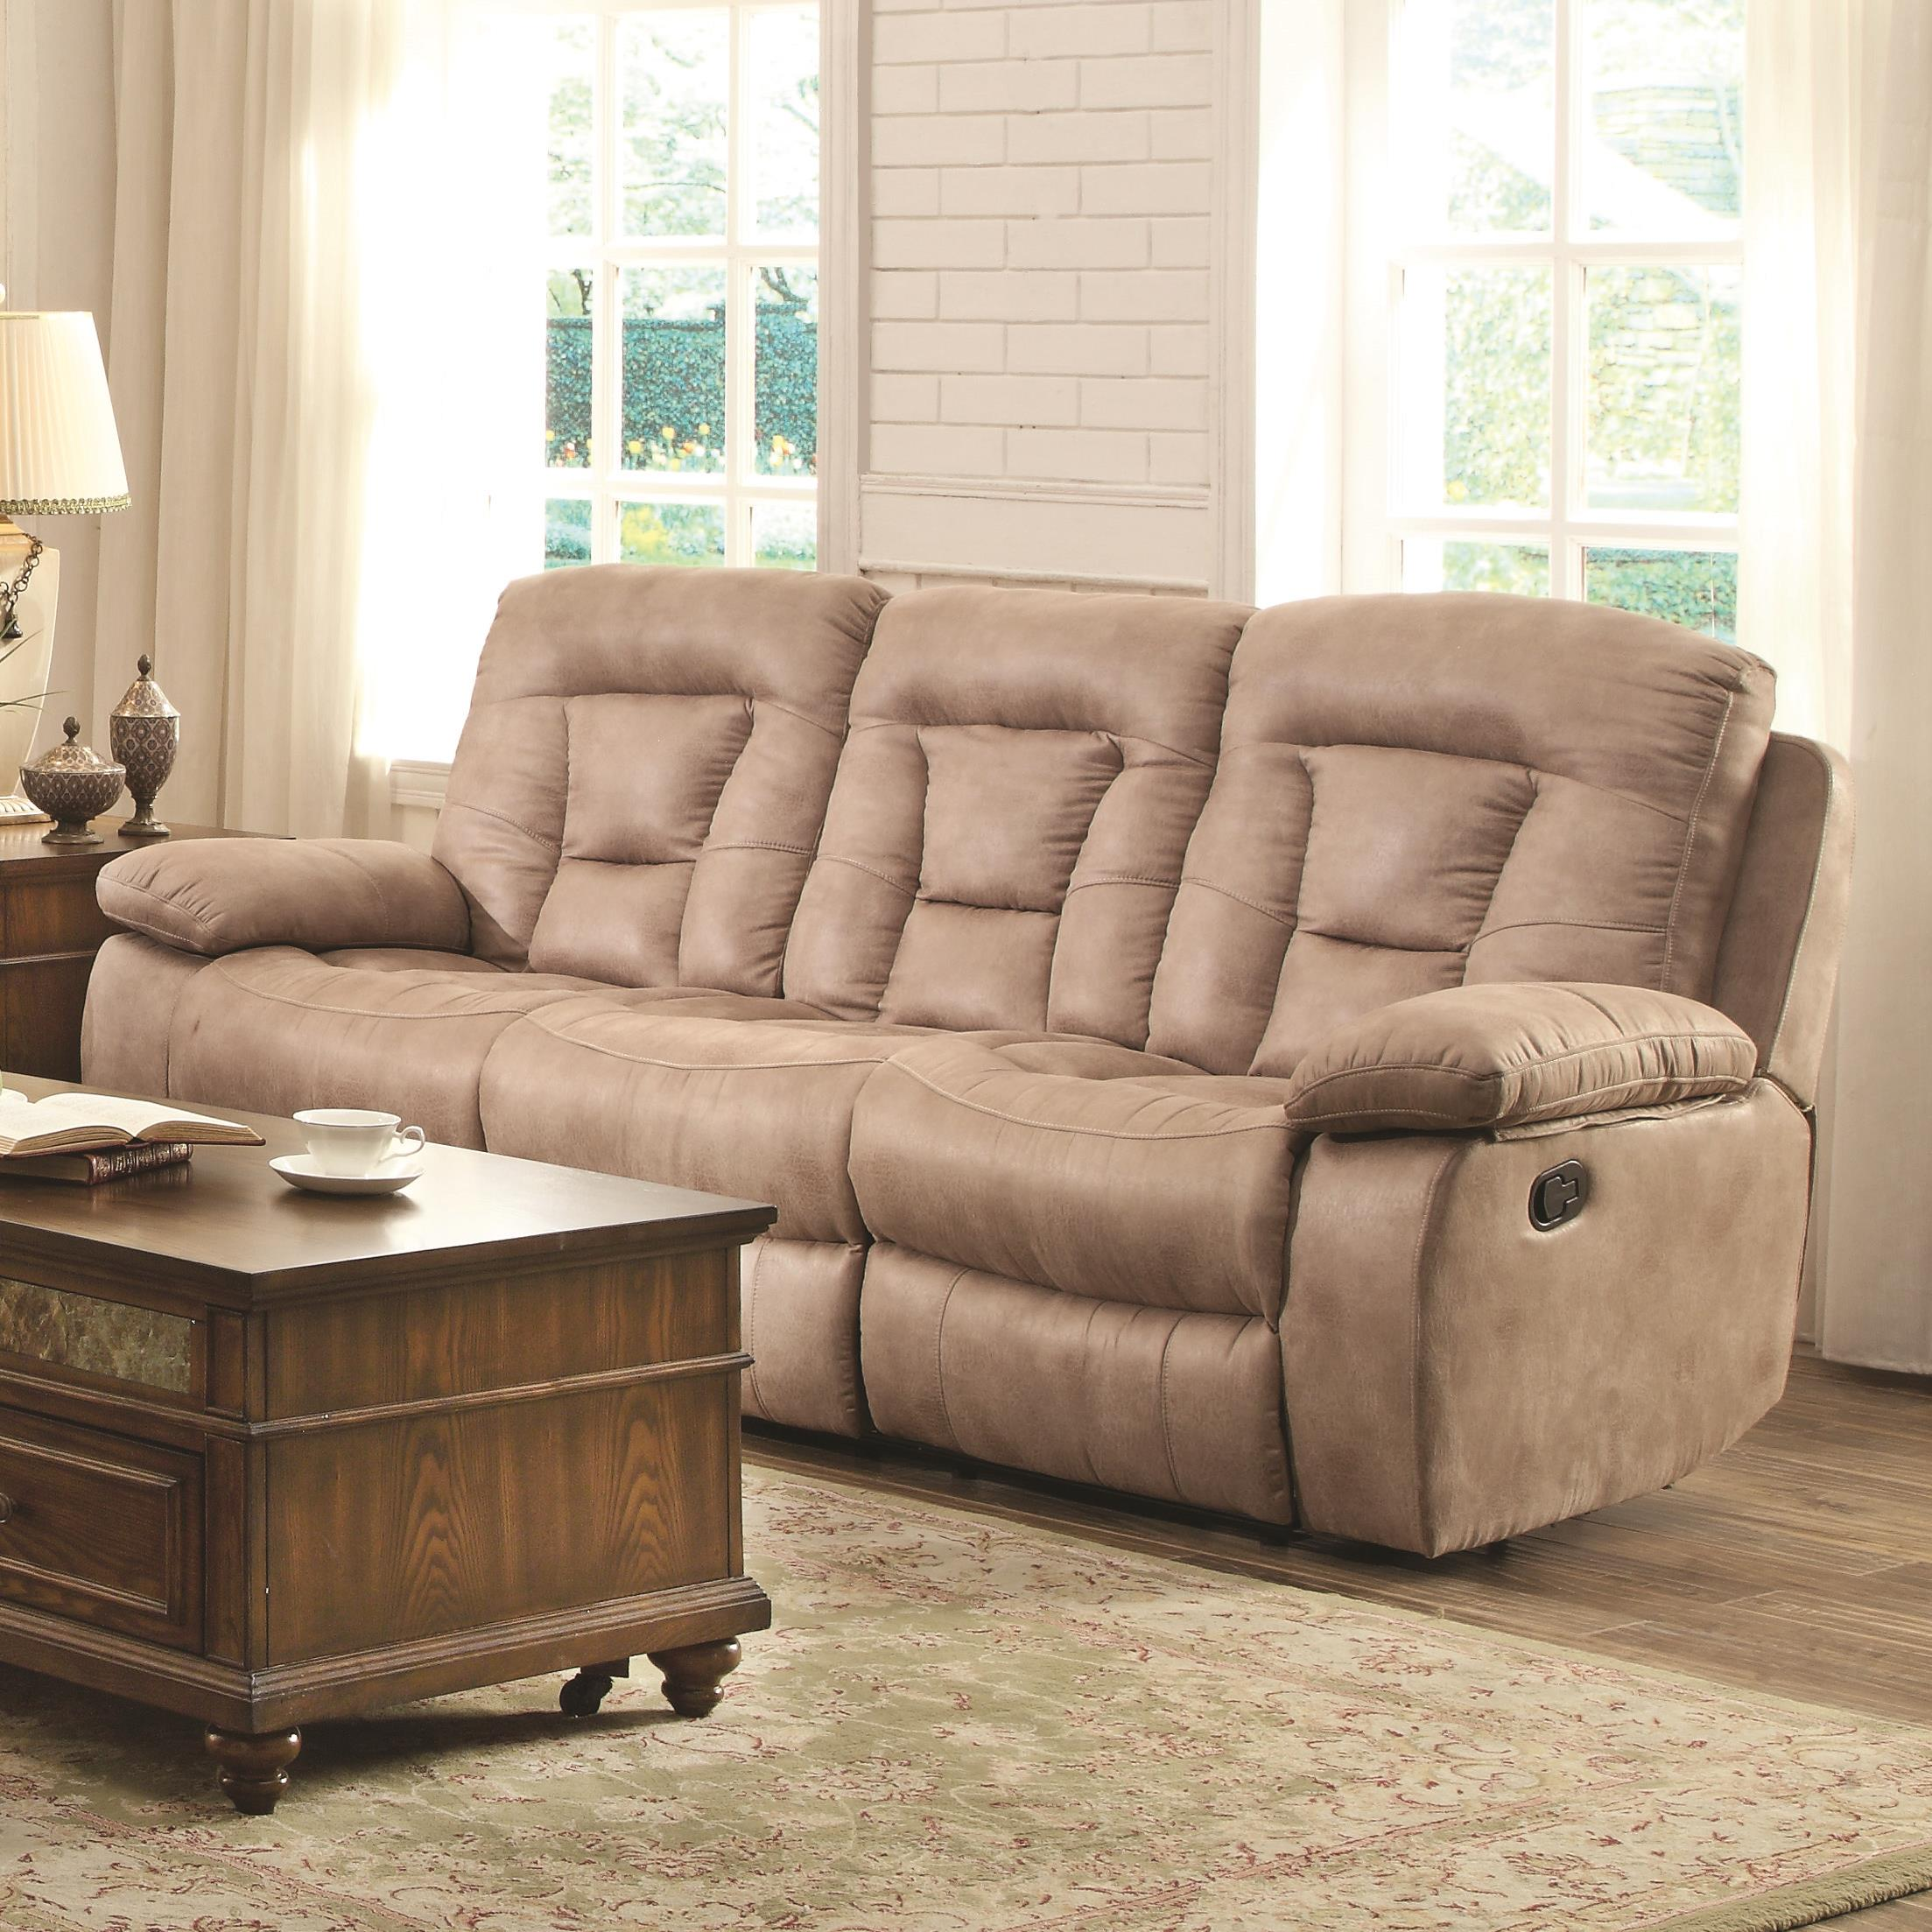 Cheap Good Quality Furniture: Evensky Motion Sofa In Performance Fabric